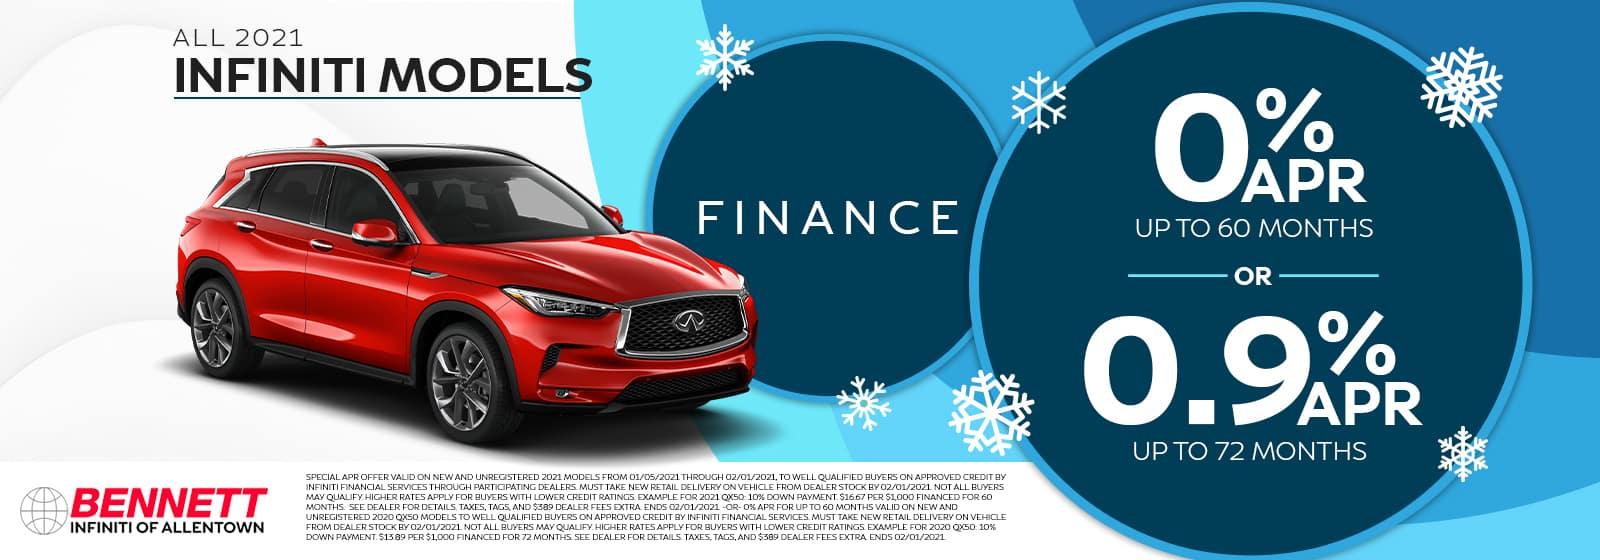 All 2021 INFINITI Models - Finance for 0% APR up to 60 months or for 0.9% APR up to 72 months.